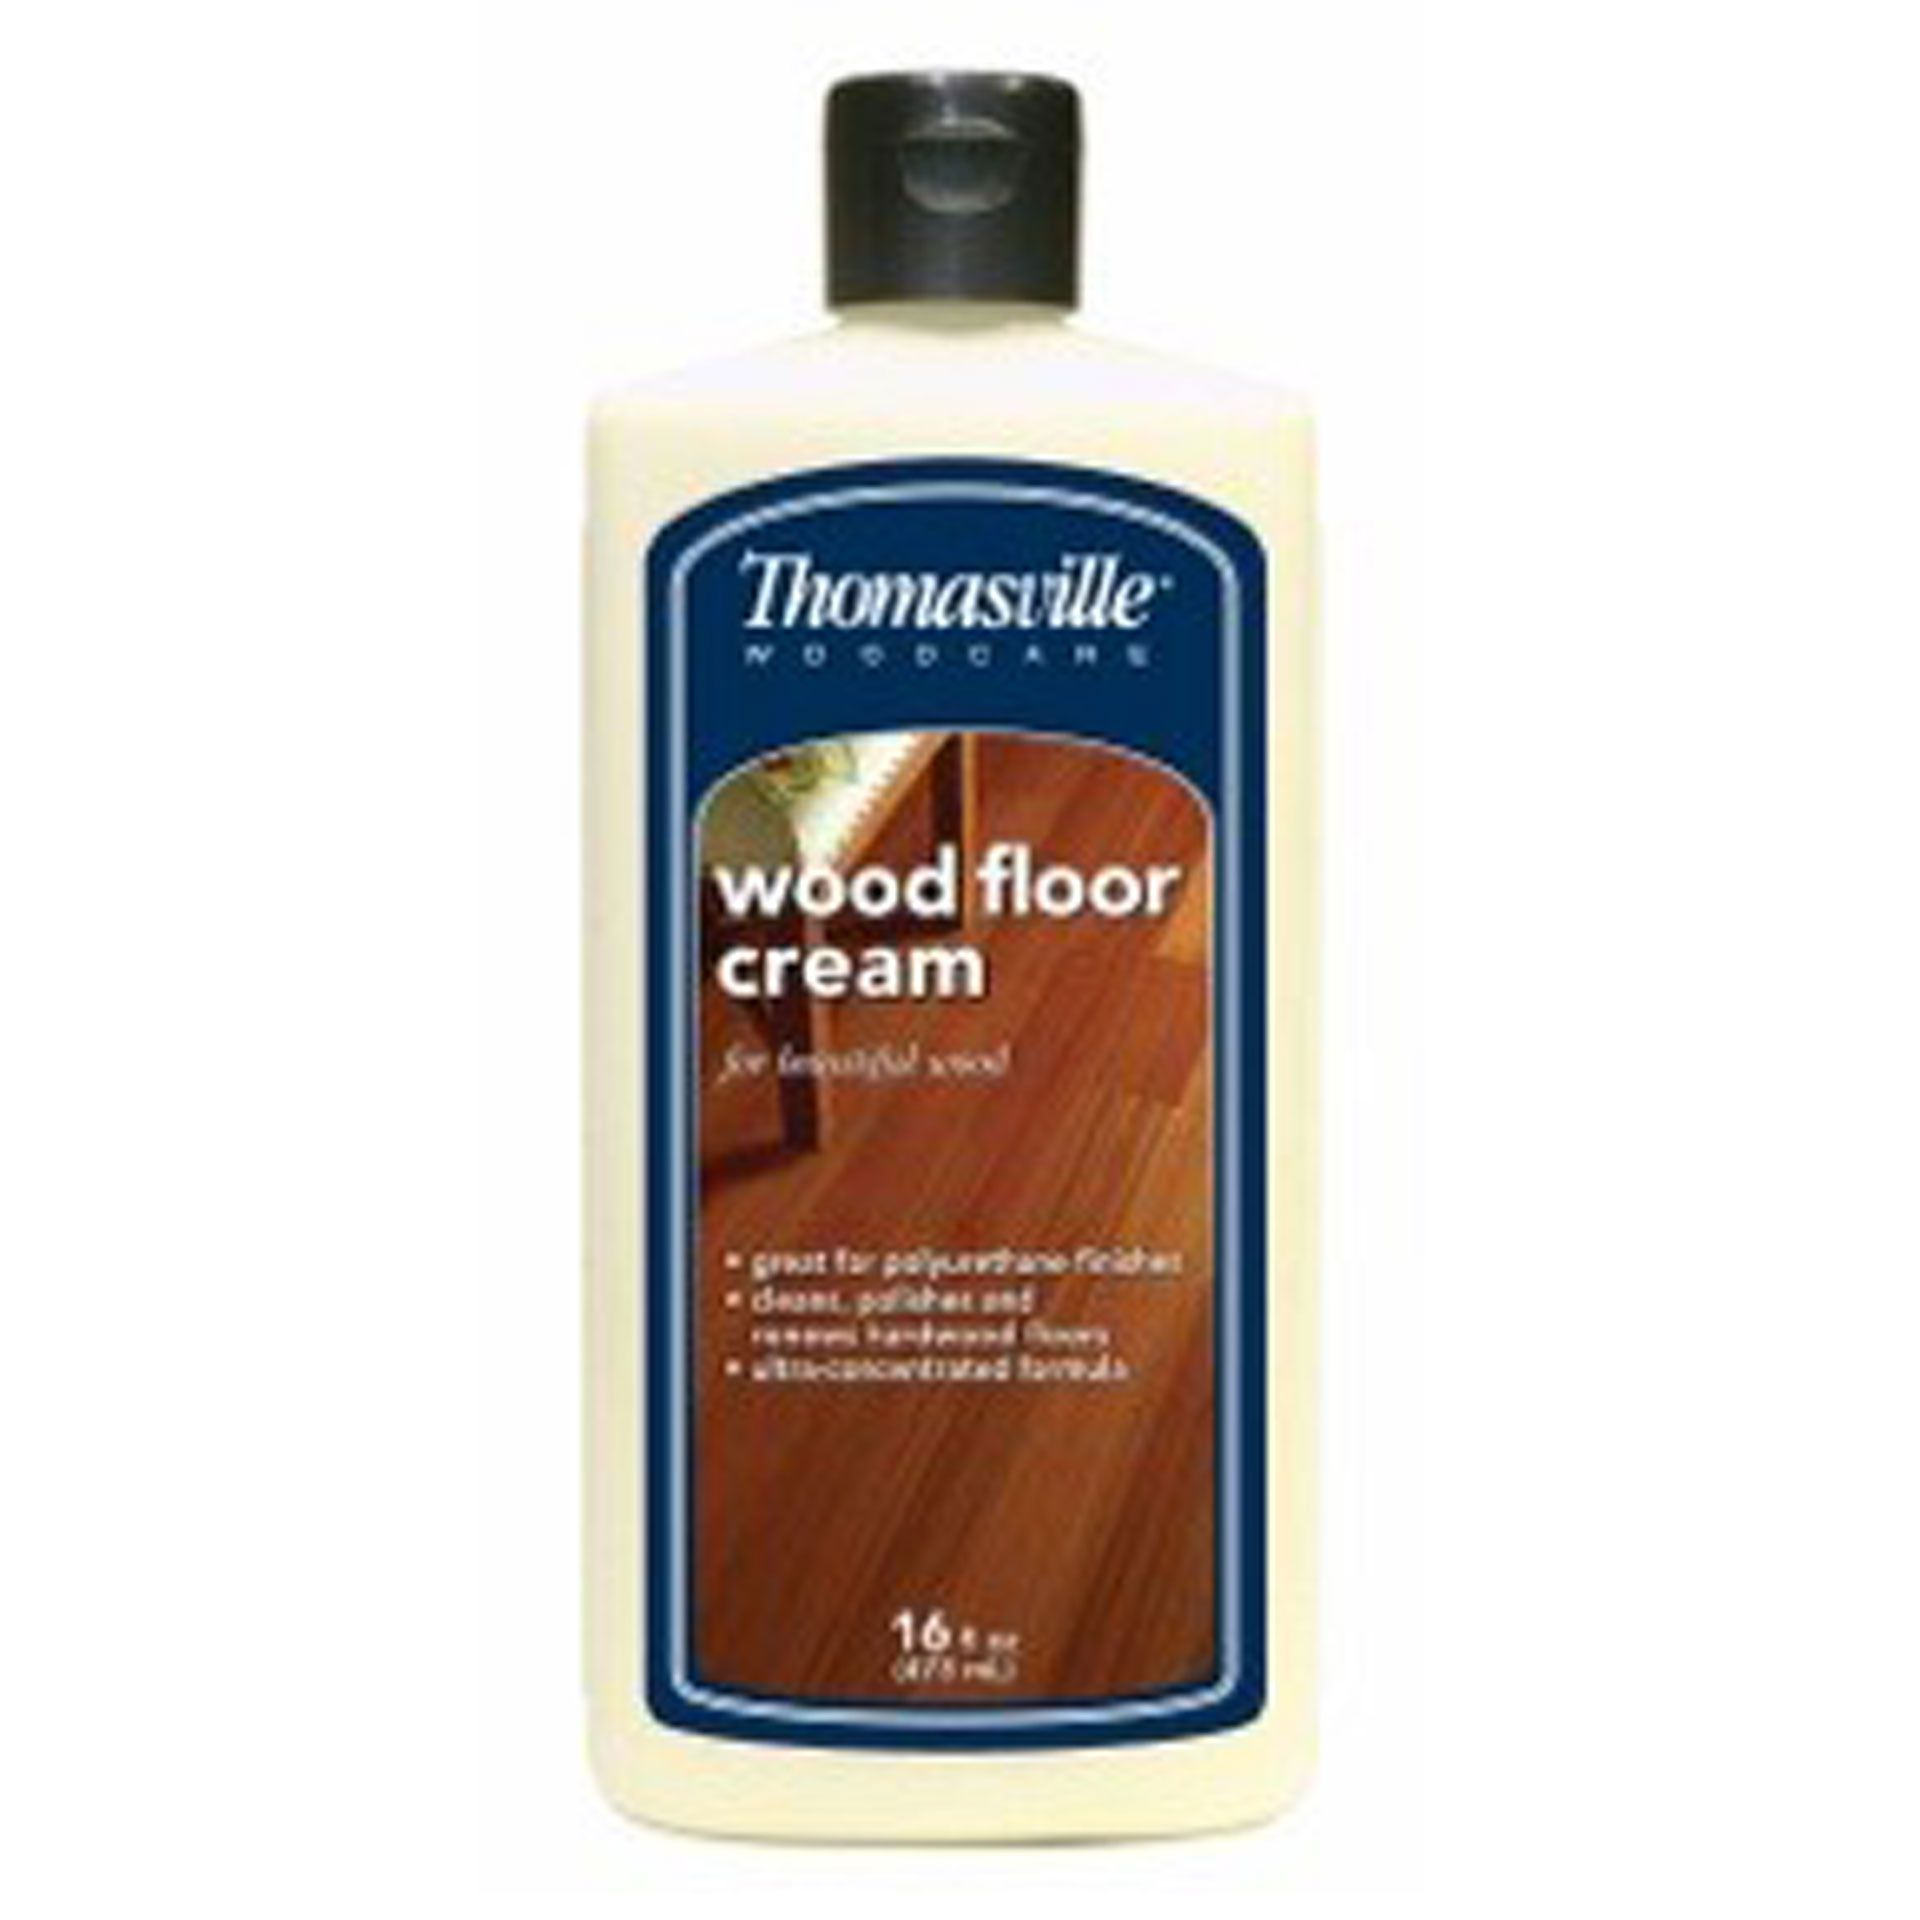 Thomasville Wood Floor Cream Review